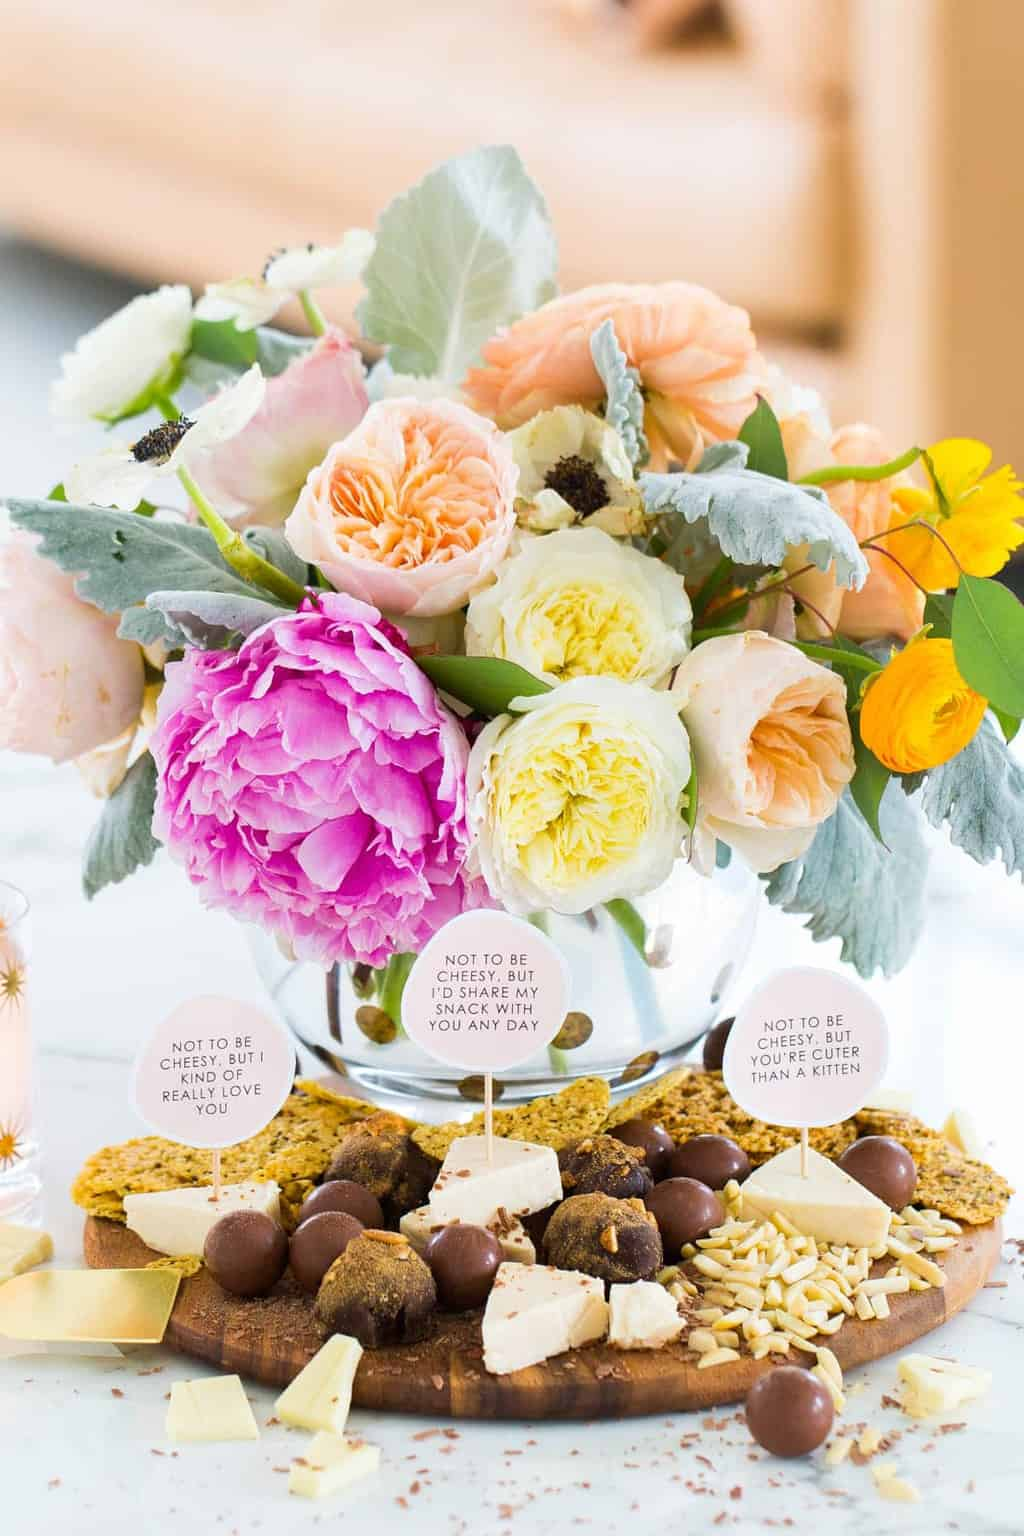 DIY Chocolate and Cheese Board Printable Love Markers by top Houston lifestyle blogger, Ashley Rose of Sugar and Cloth